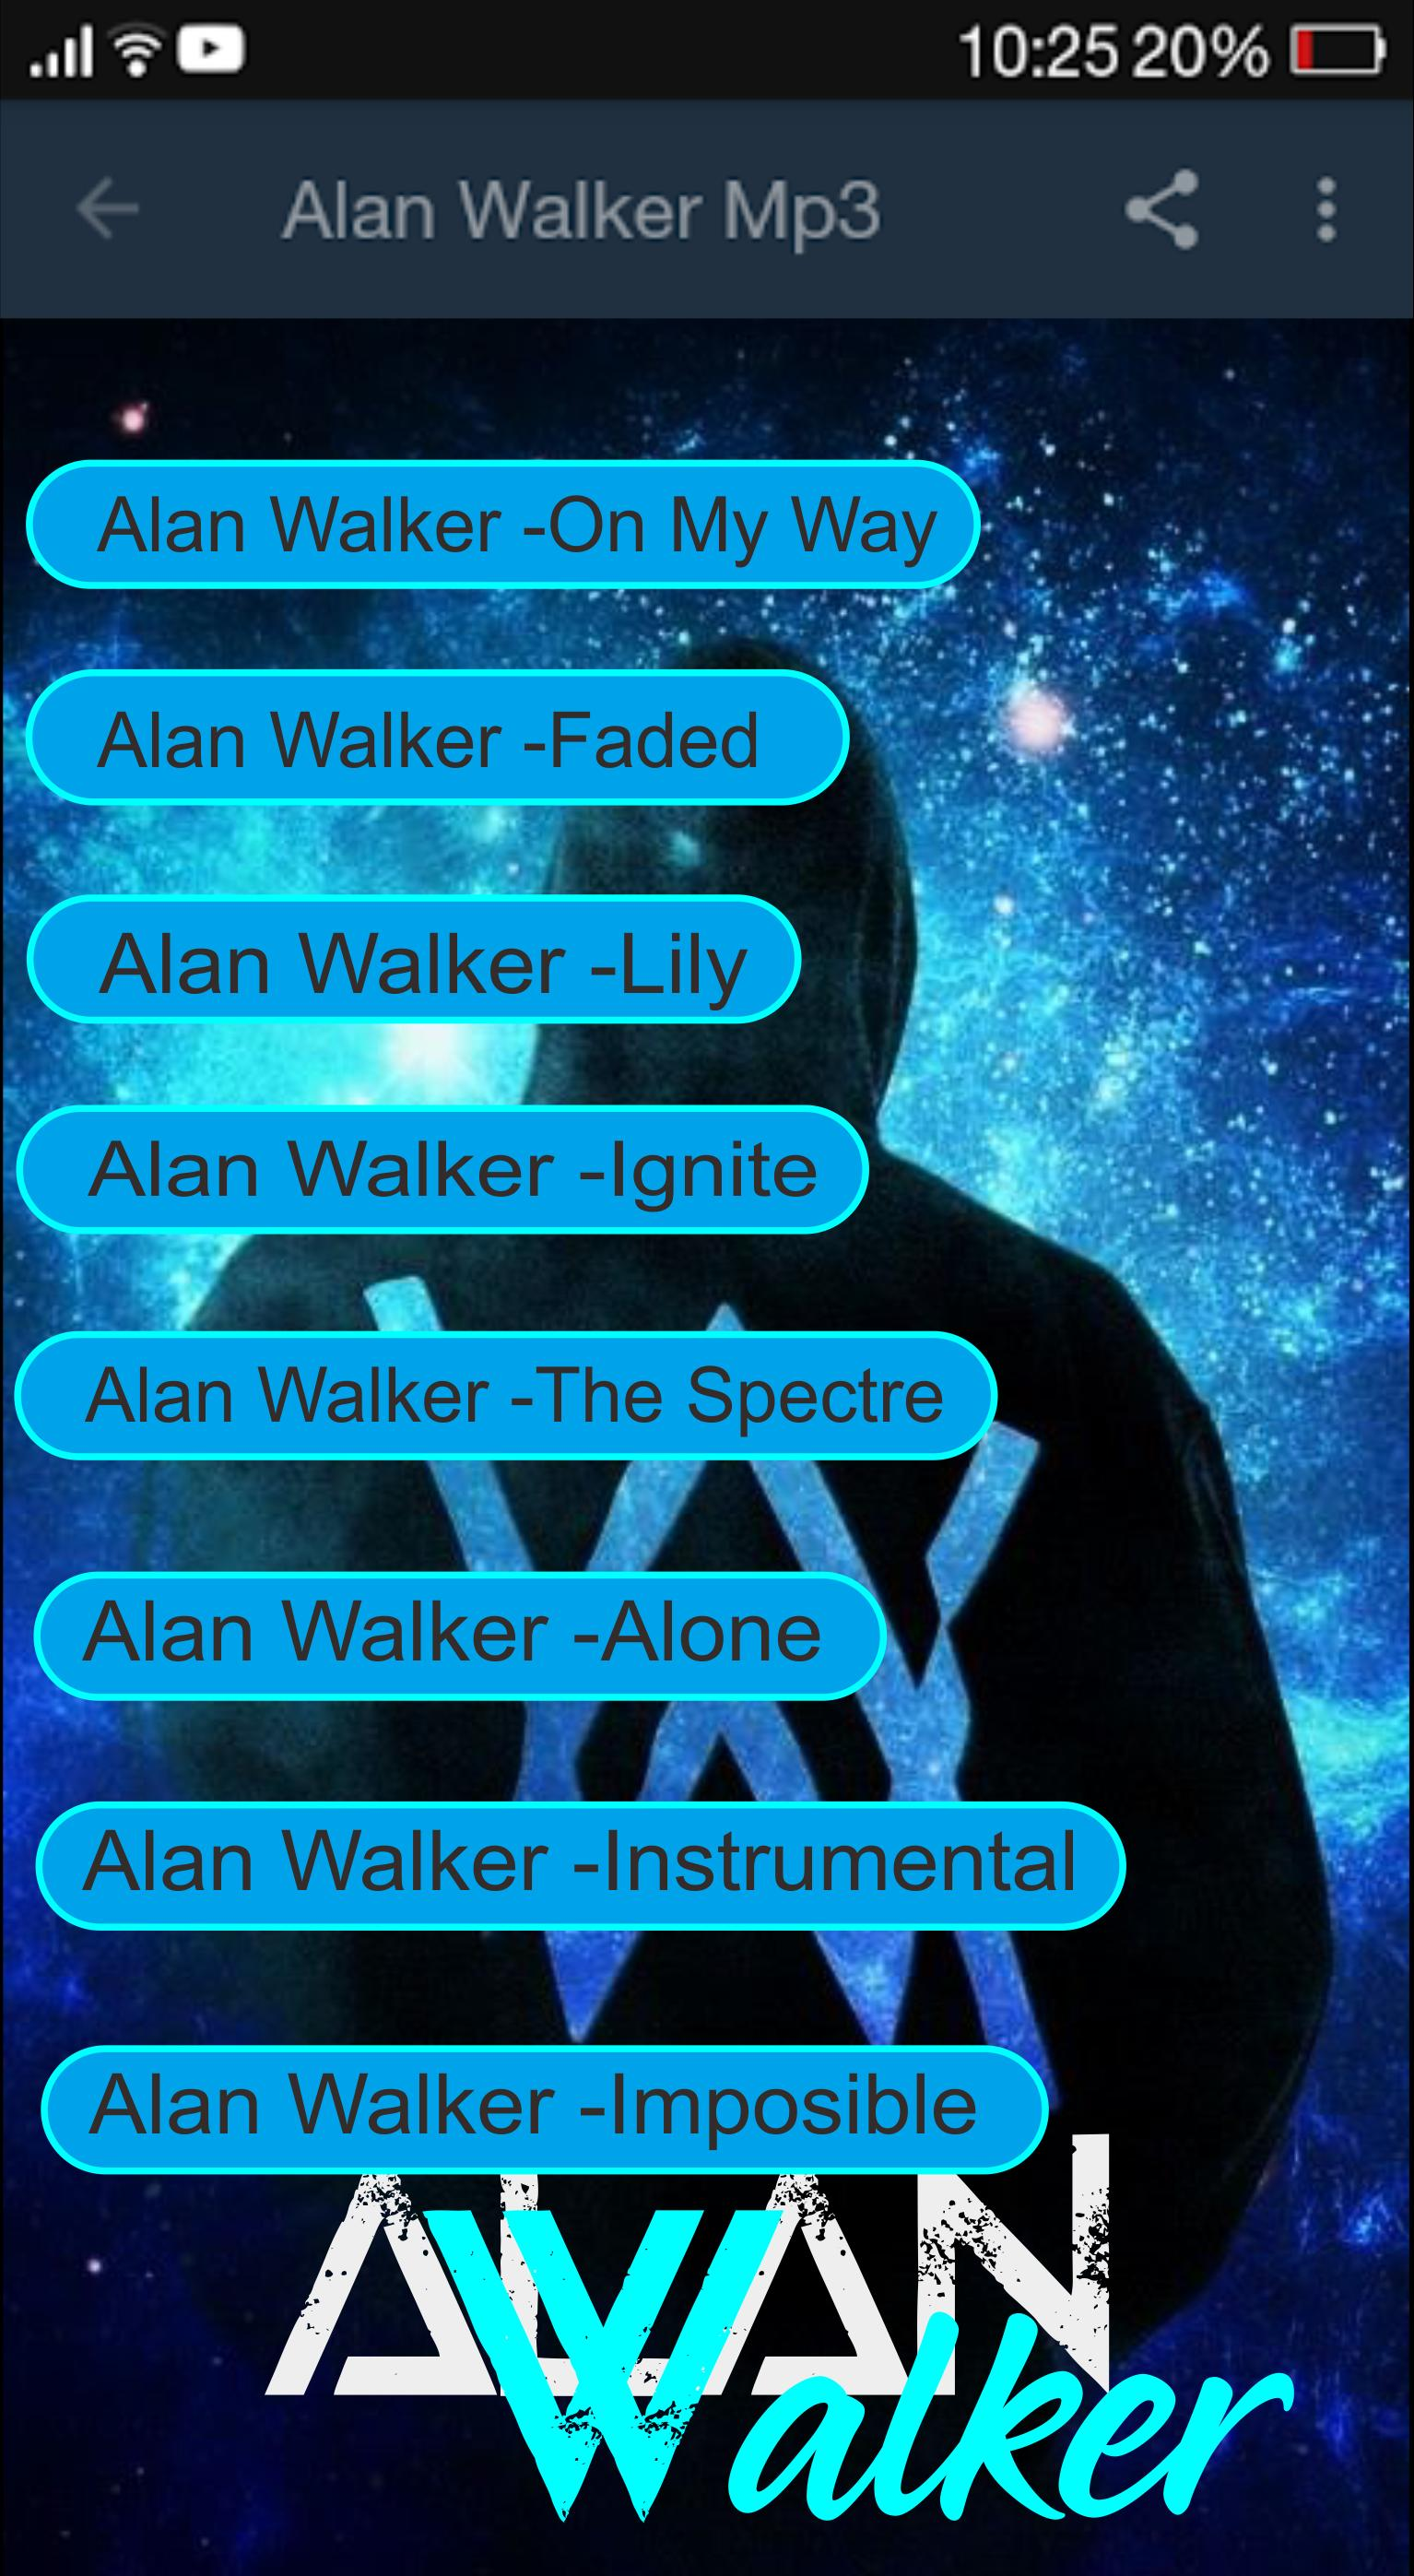 Alan Walker Mp3 for Android - APK Download